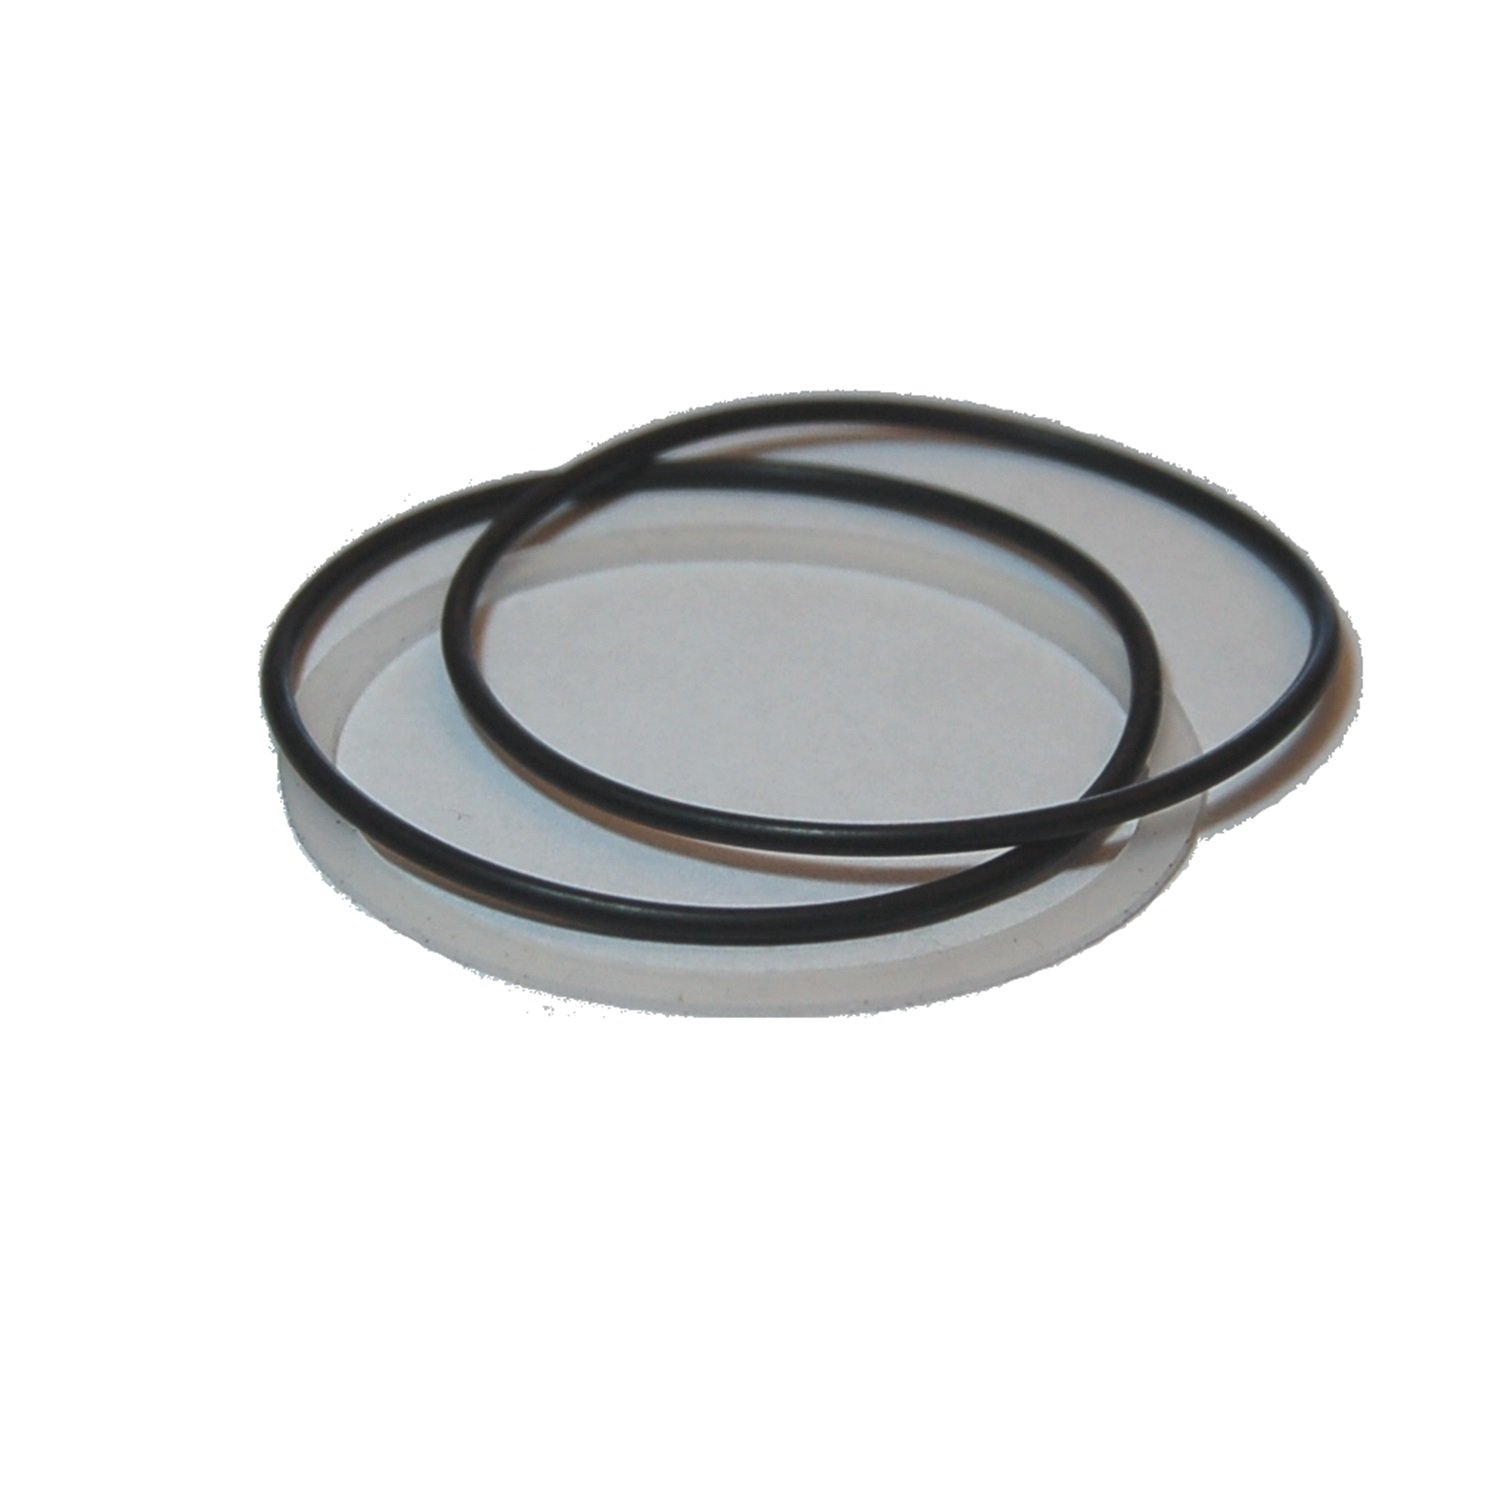 Lazer Star O-Ring//Gasket Kit Replacement for Bullet//Shorty RK01-GSK